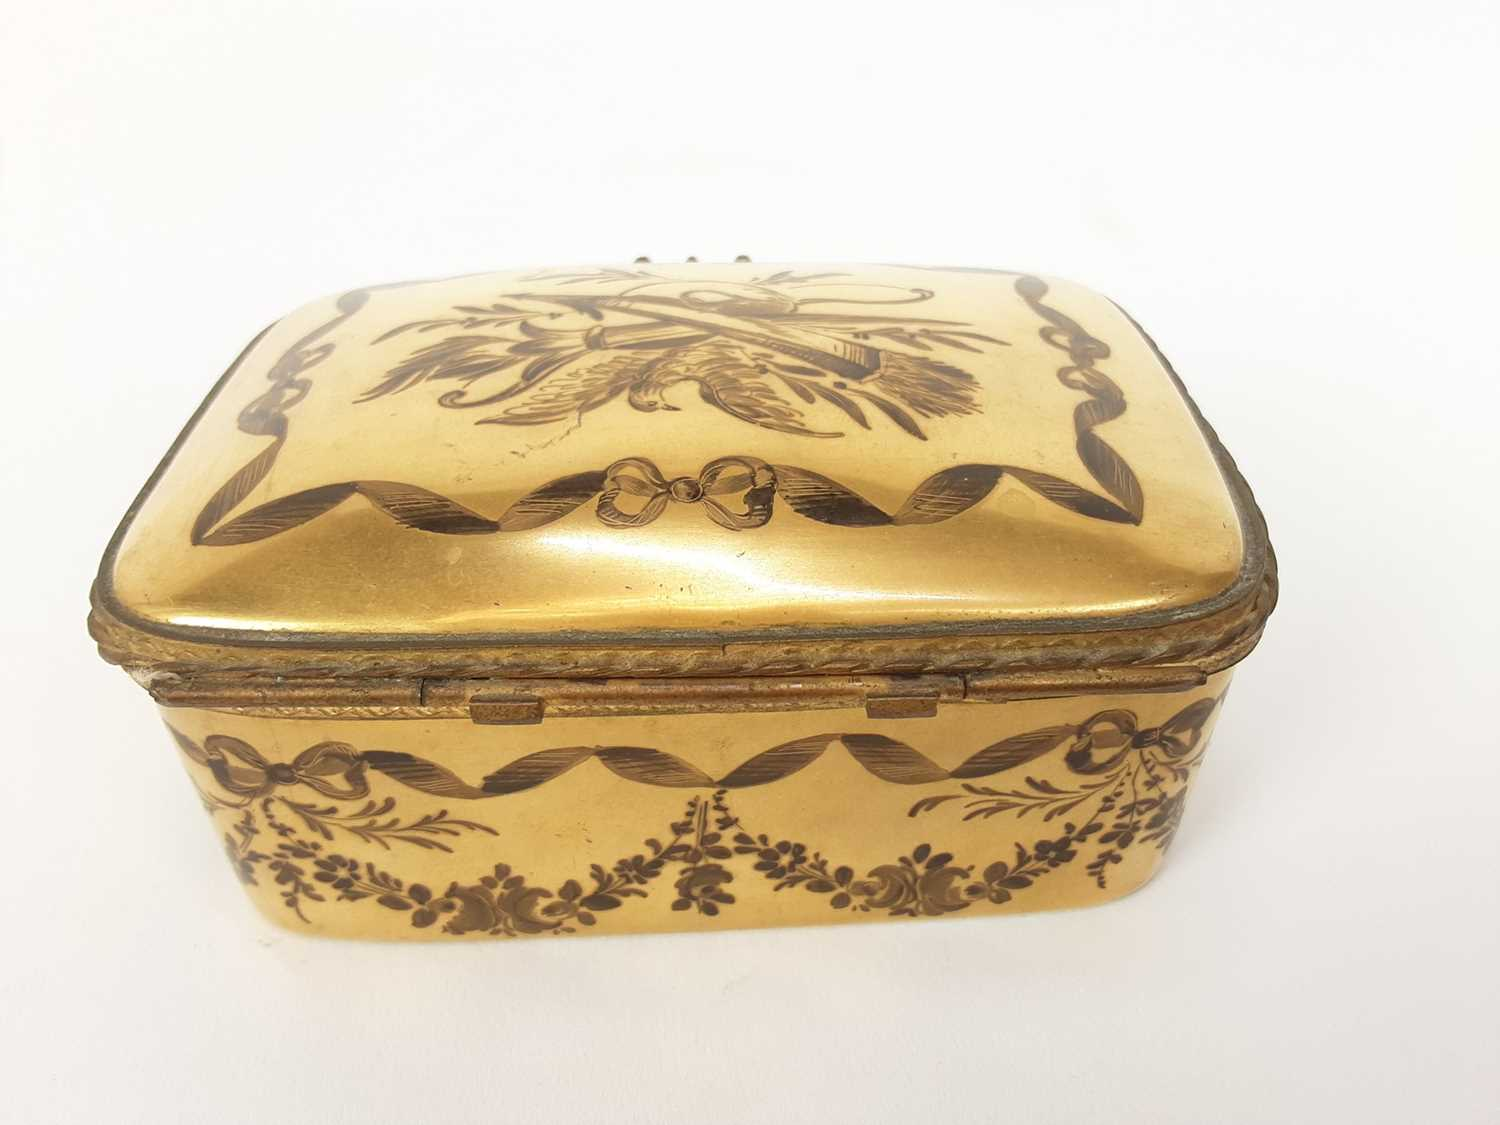 French ormolu-mounted porcelain box, late 19th century, probably Limoges, gilded and enamelled en gr - Image 3 of 7